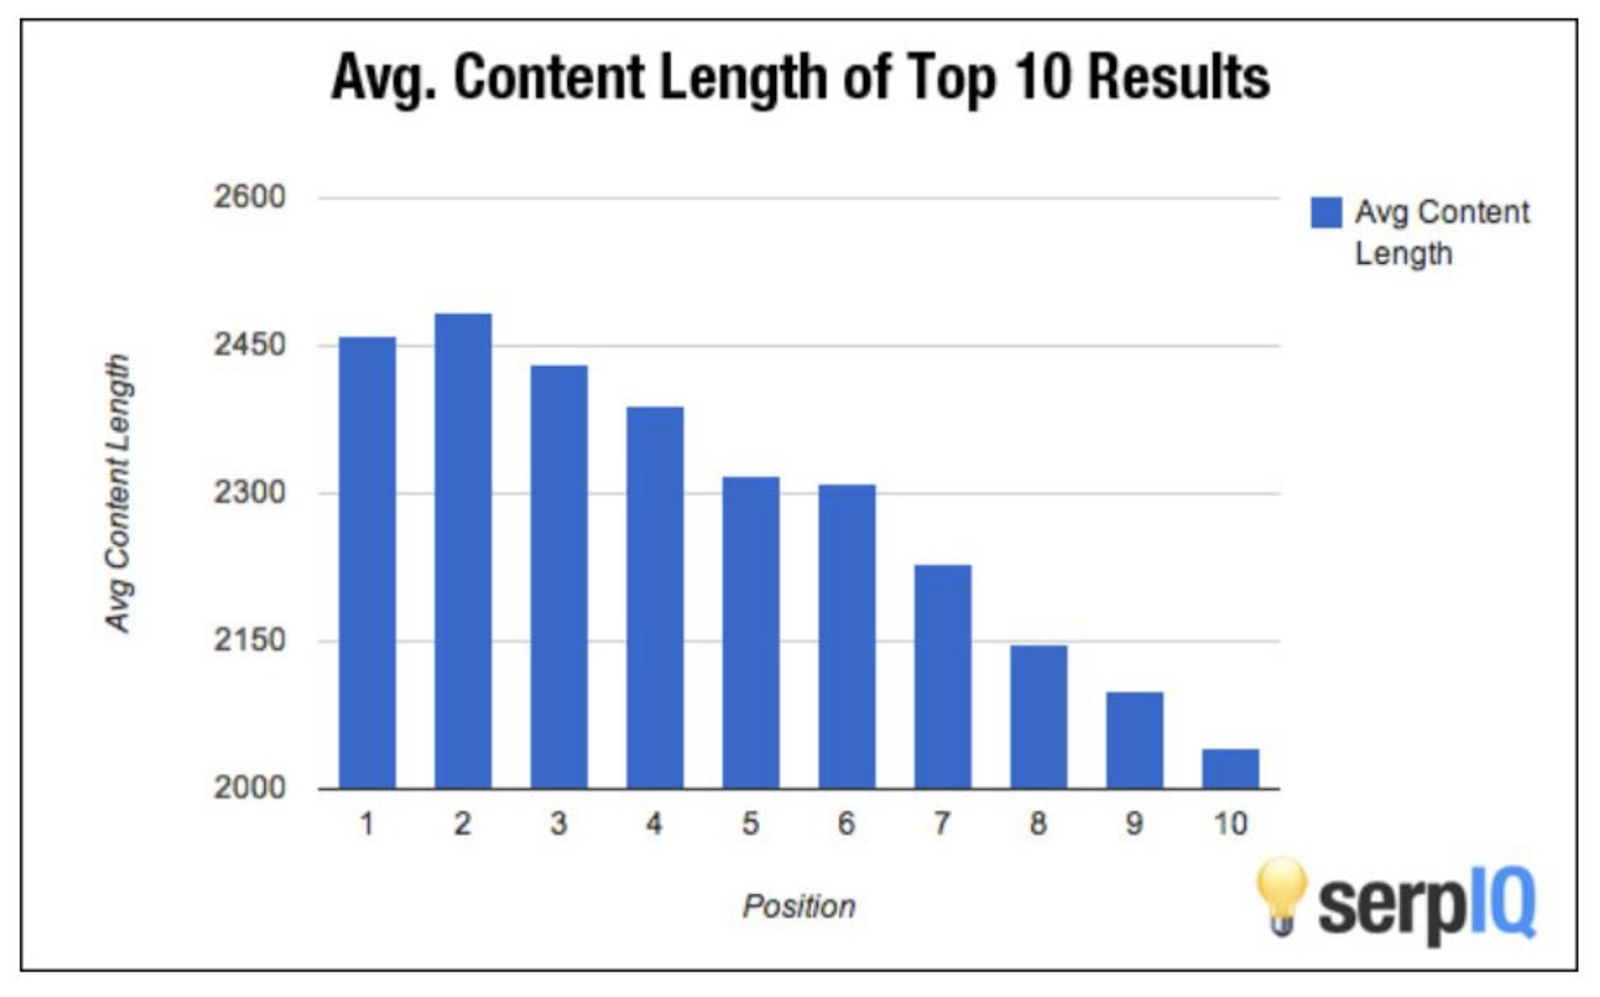 Histogram showing the average content length of pages in the Top 10 search results.